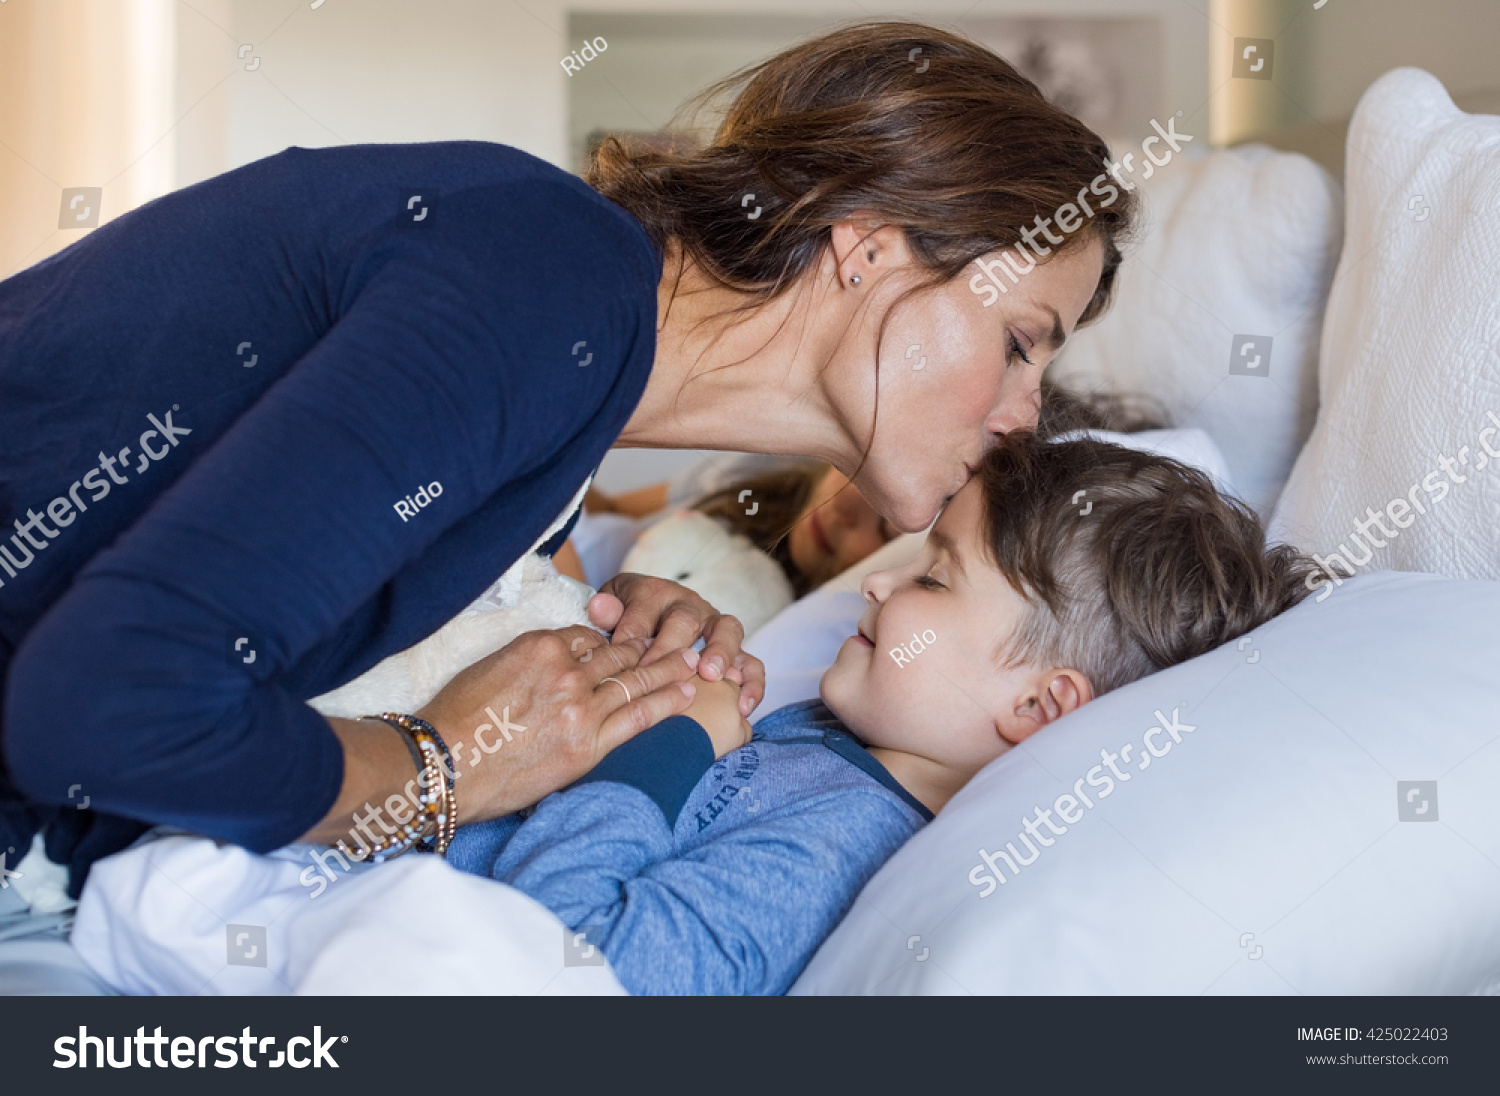 Mom Son Bed Mother Giving Good Night Kiss Sleeping Stock